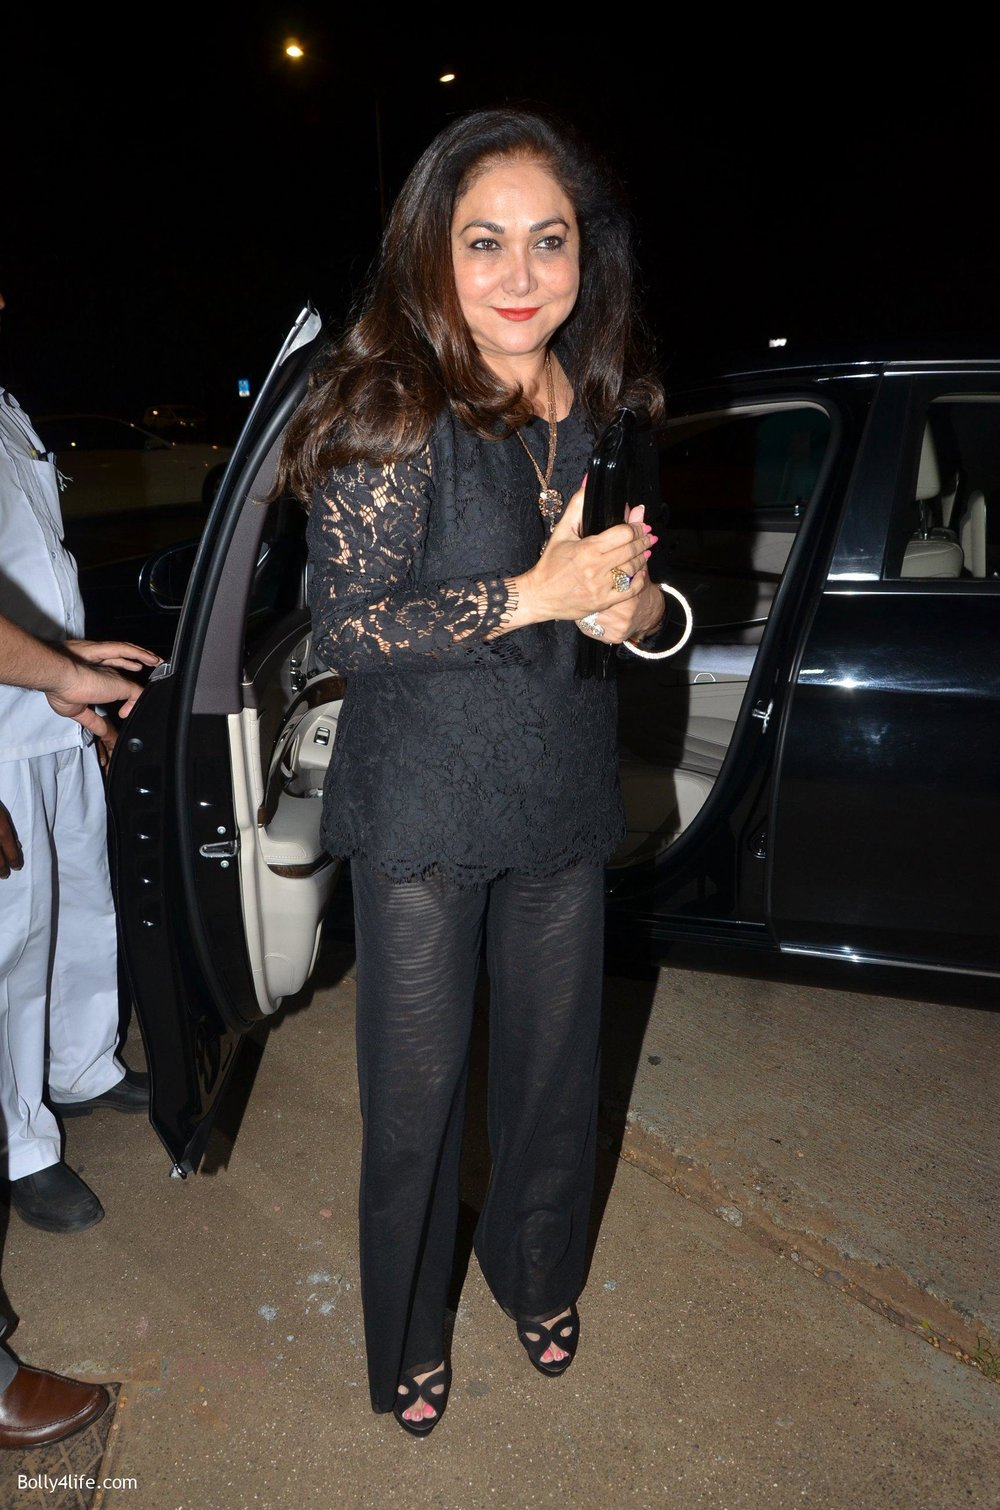 Tina-Ambani-at-Reema-jain-bday-party-in-Amadeus-NCPA-on-28th-Sept-2016-612.jpg